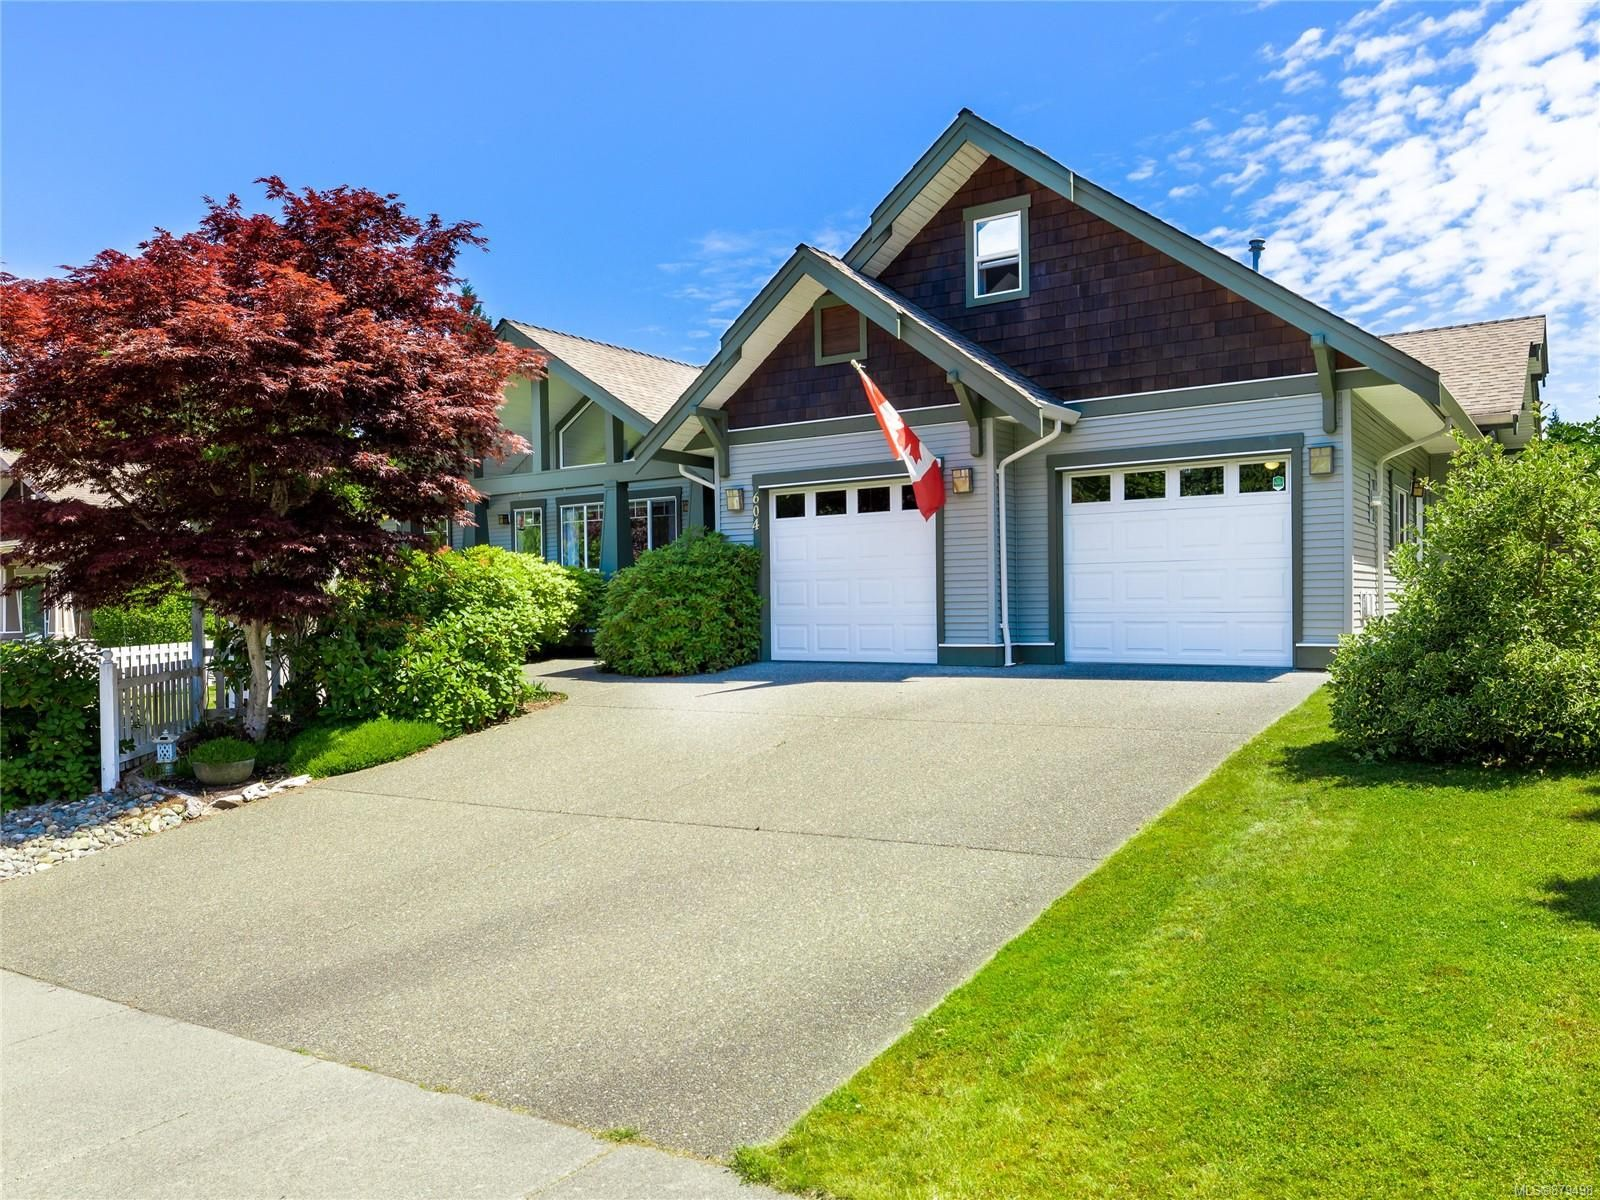 Main Photo: 604 LaCouvee Way in : PQ Qualicum Beach House for sale (Parksville/Qualicum)  : MLS®# 879498